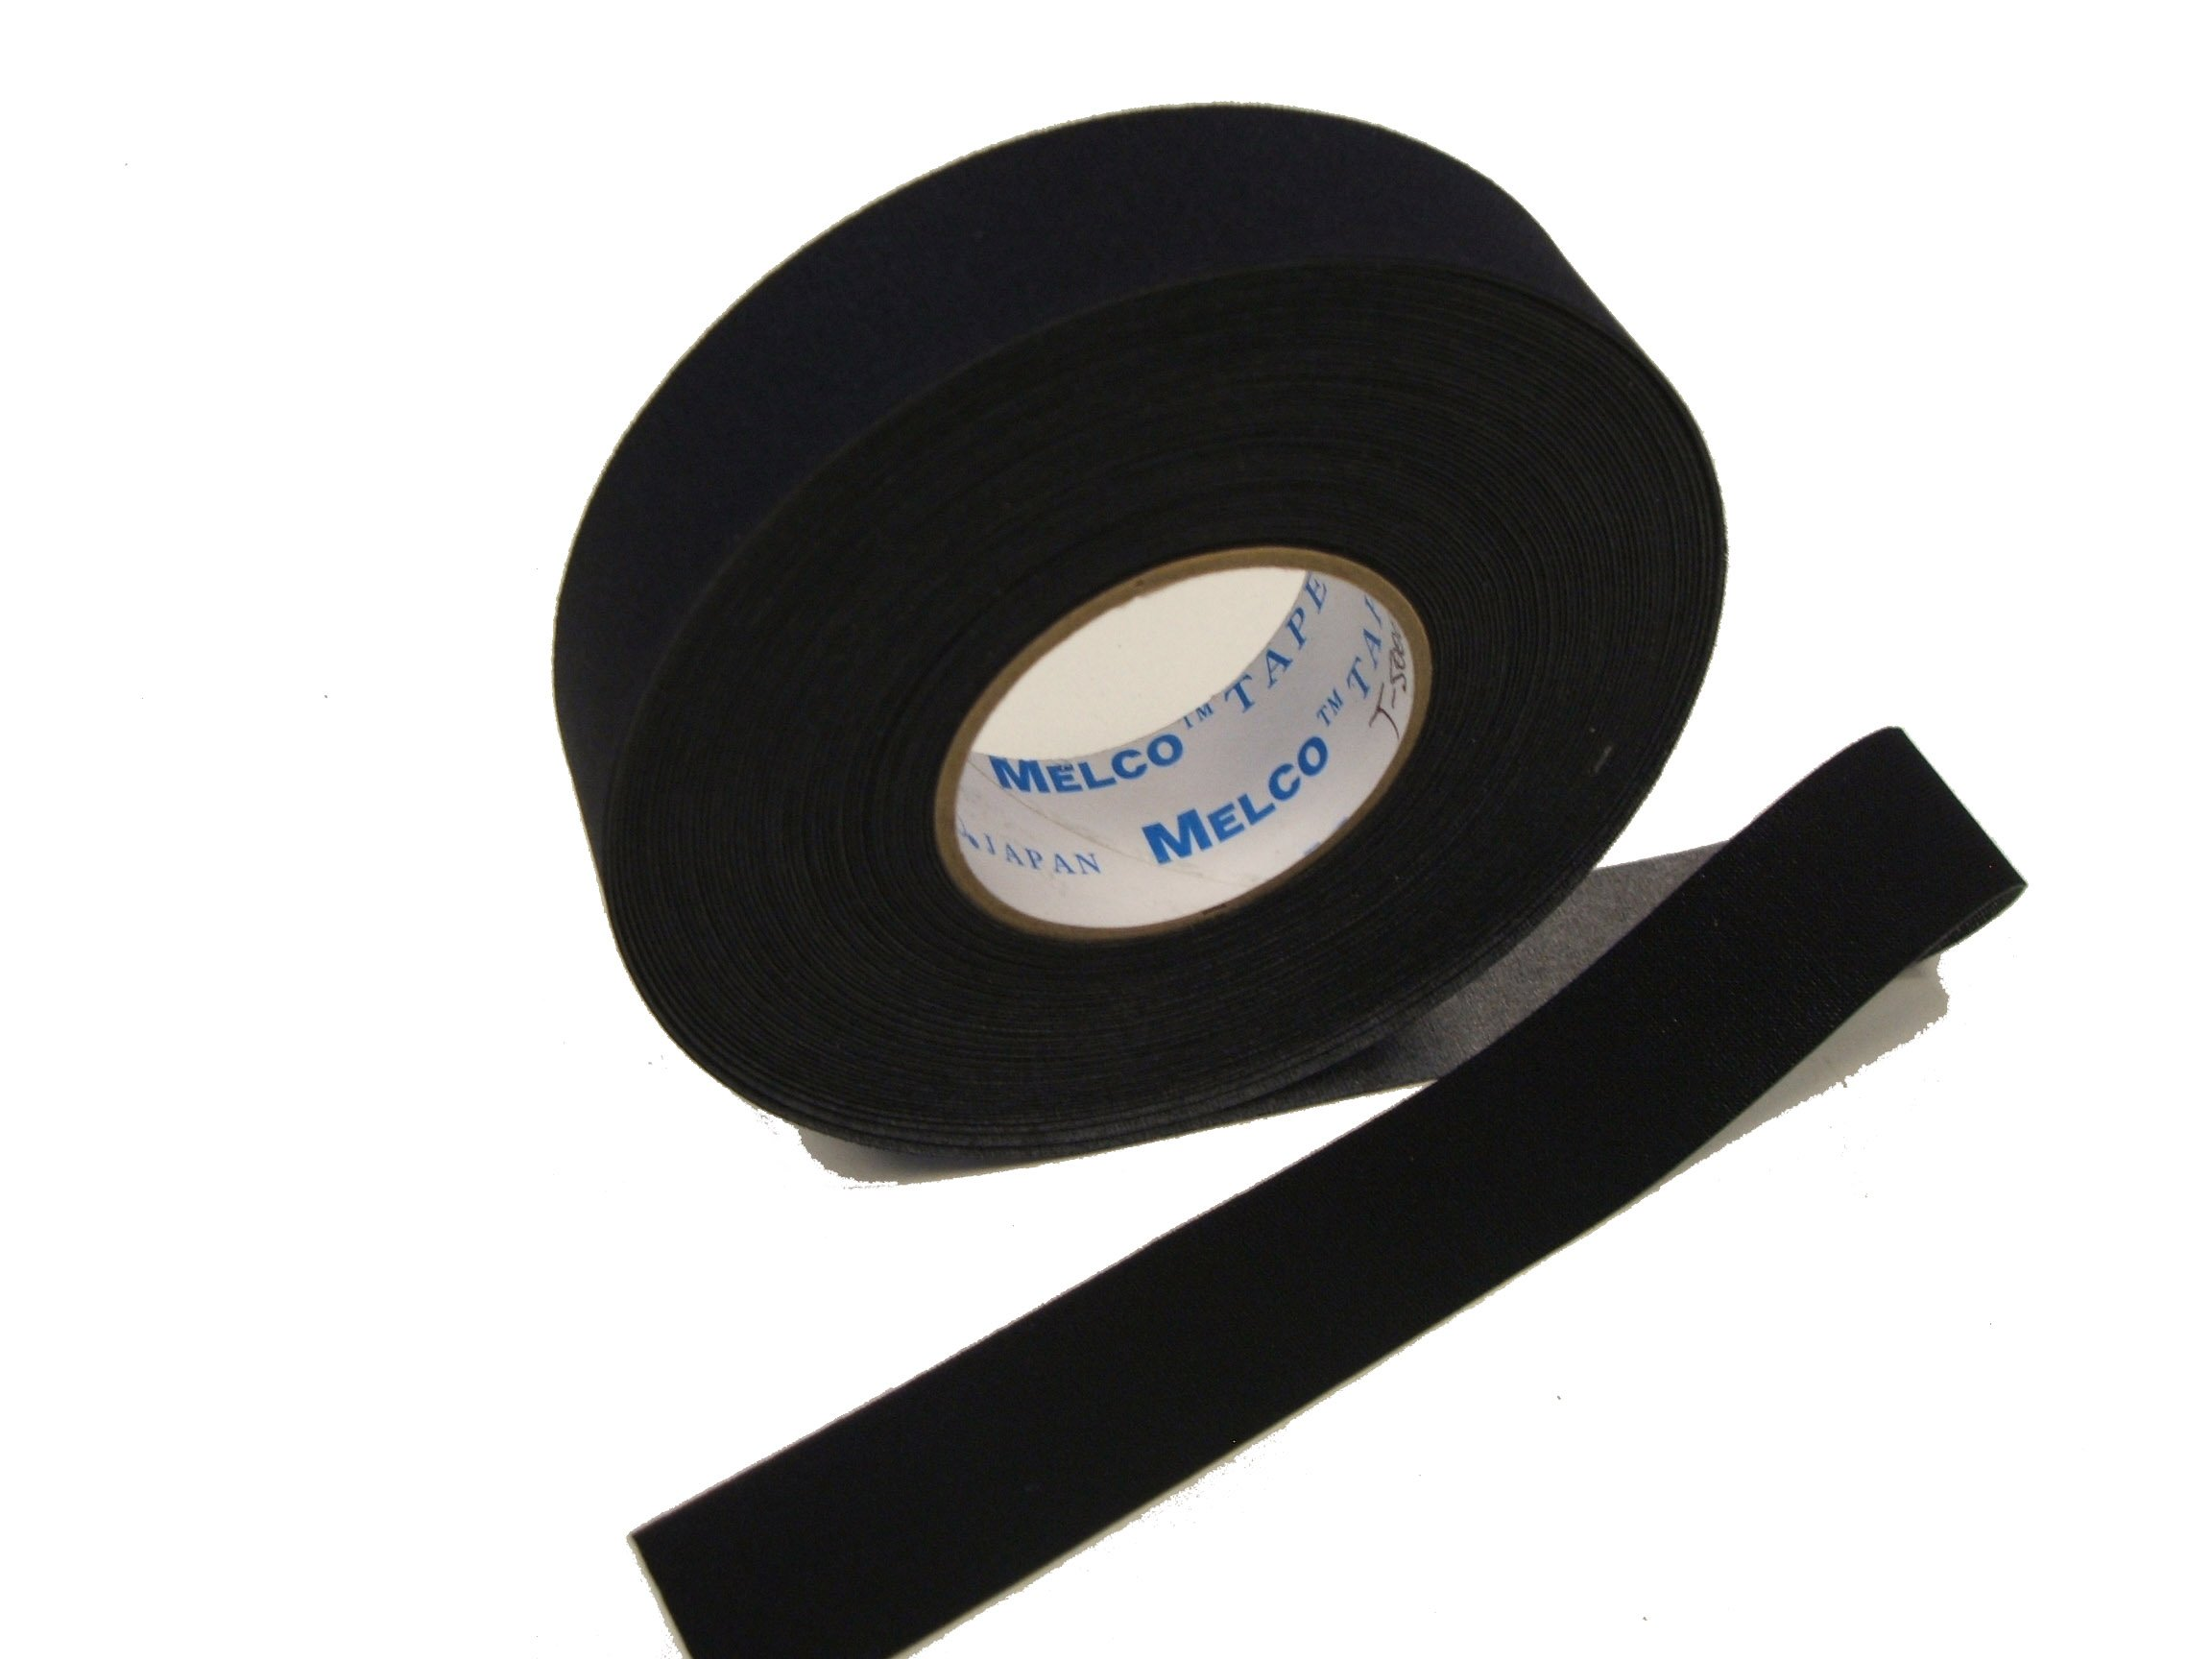 Cinta sellado neopreno Tape Melco T-5000 6